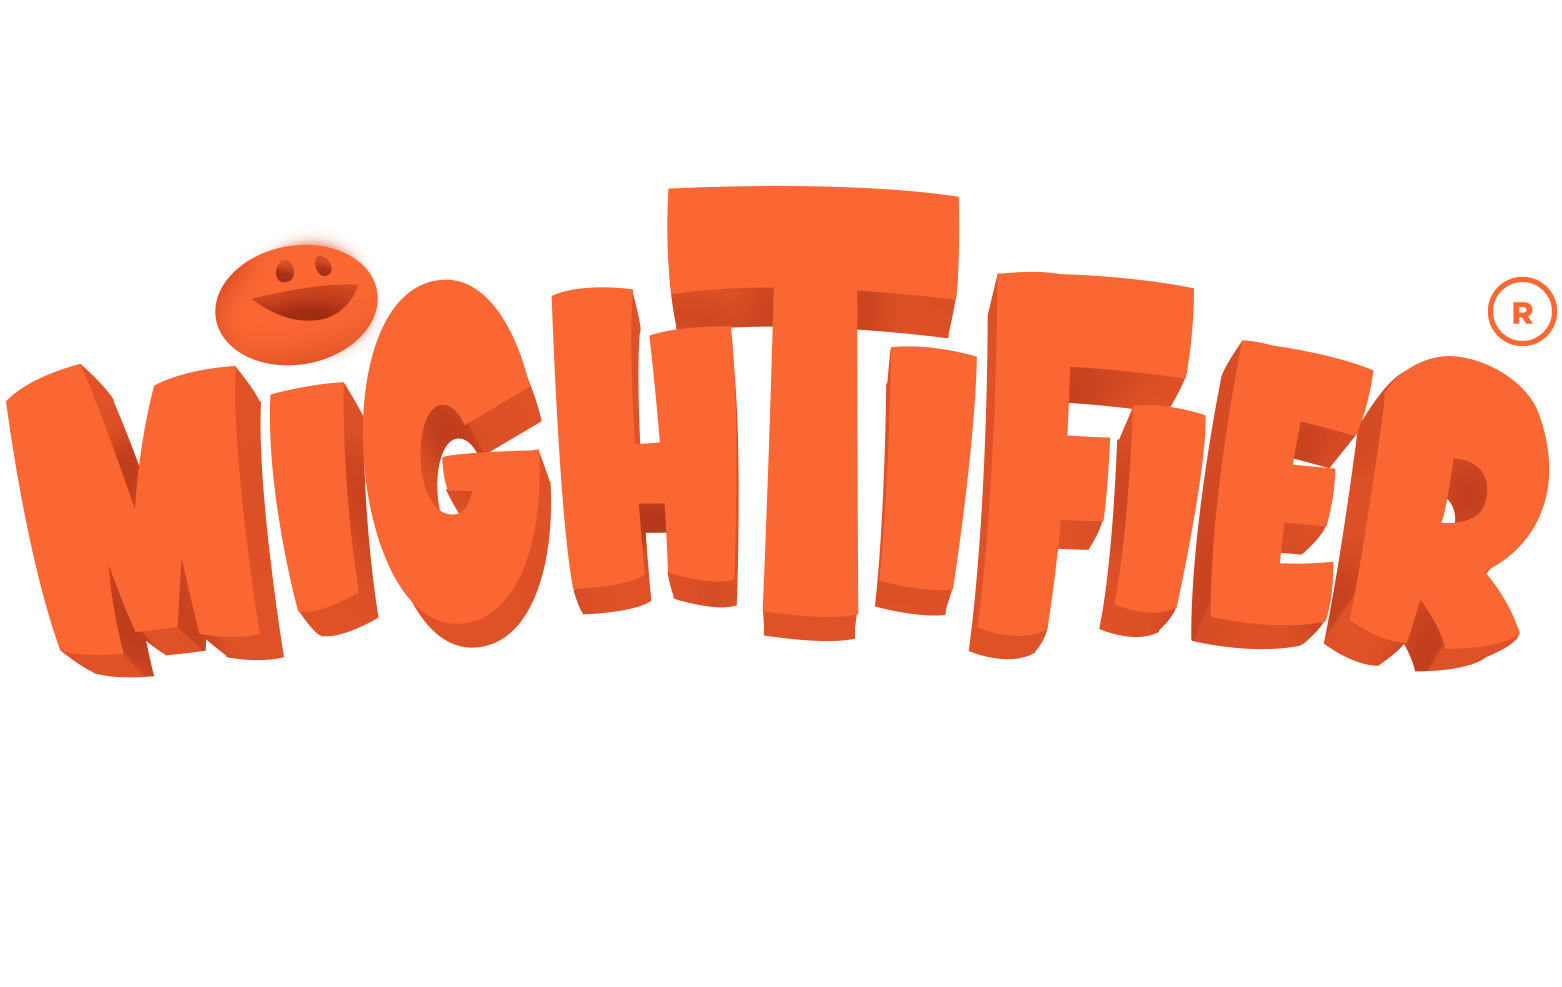 MIghtifier-logo-orange